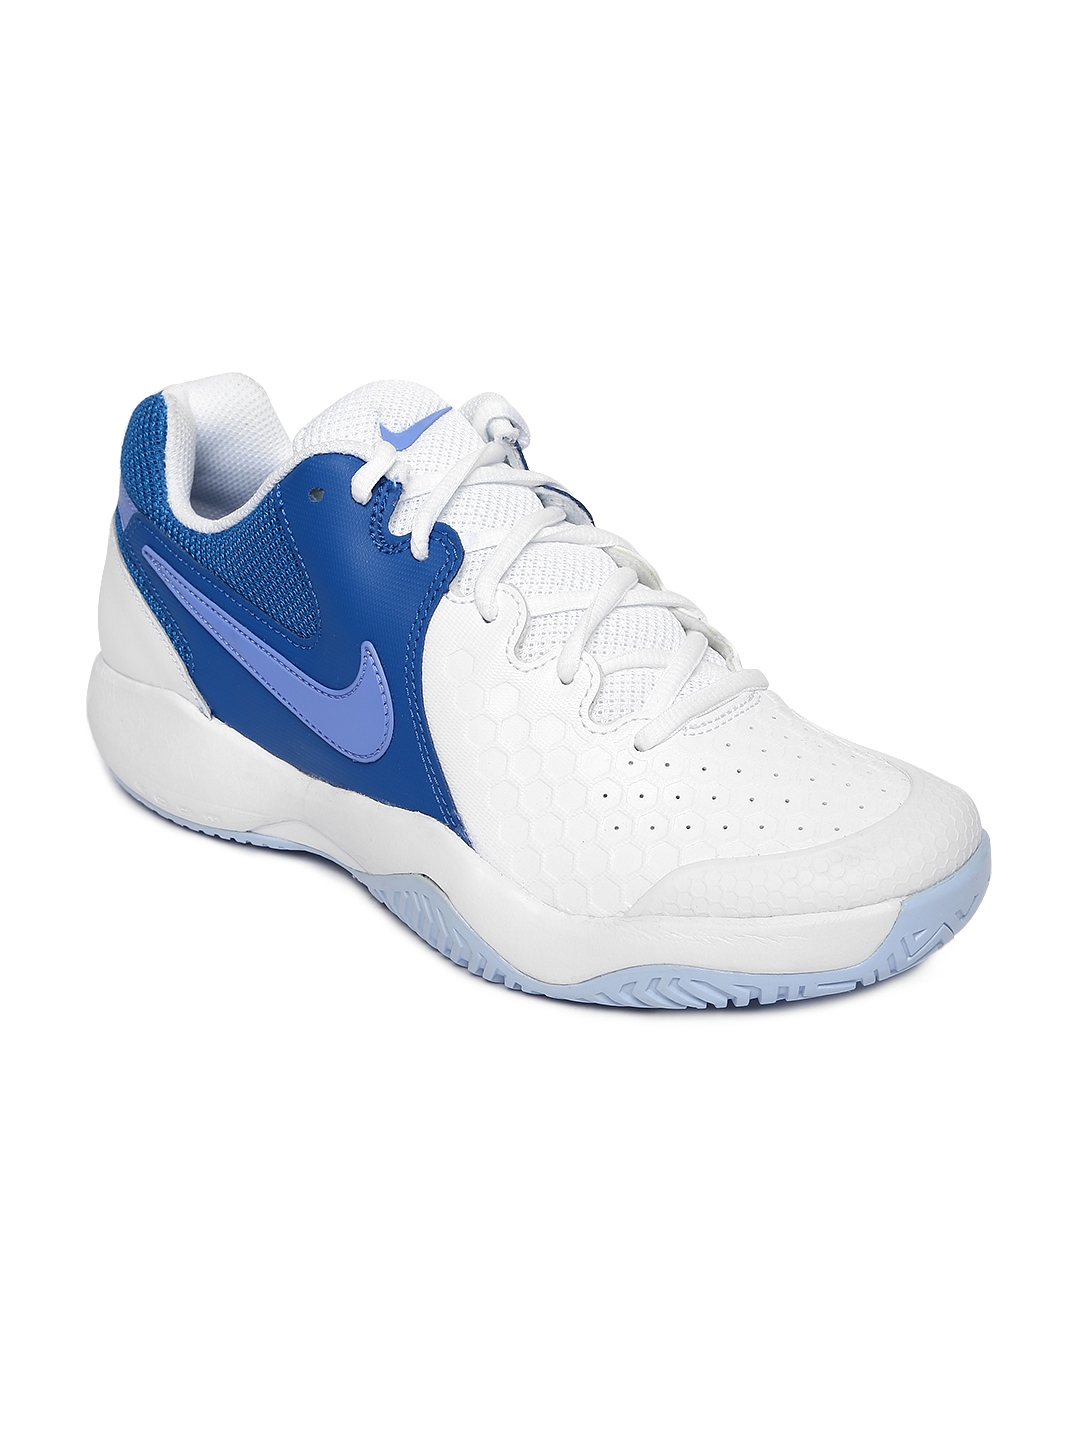 best sneakers 60755 4e5ab Nike Women White   Blue NIKE AIR ZOOM RESISTANCE Tennis Shoes